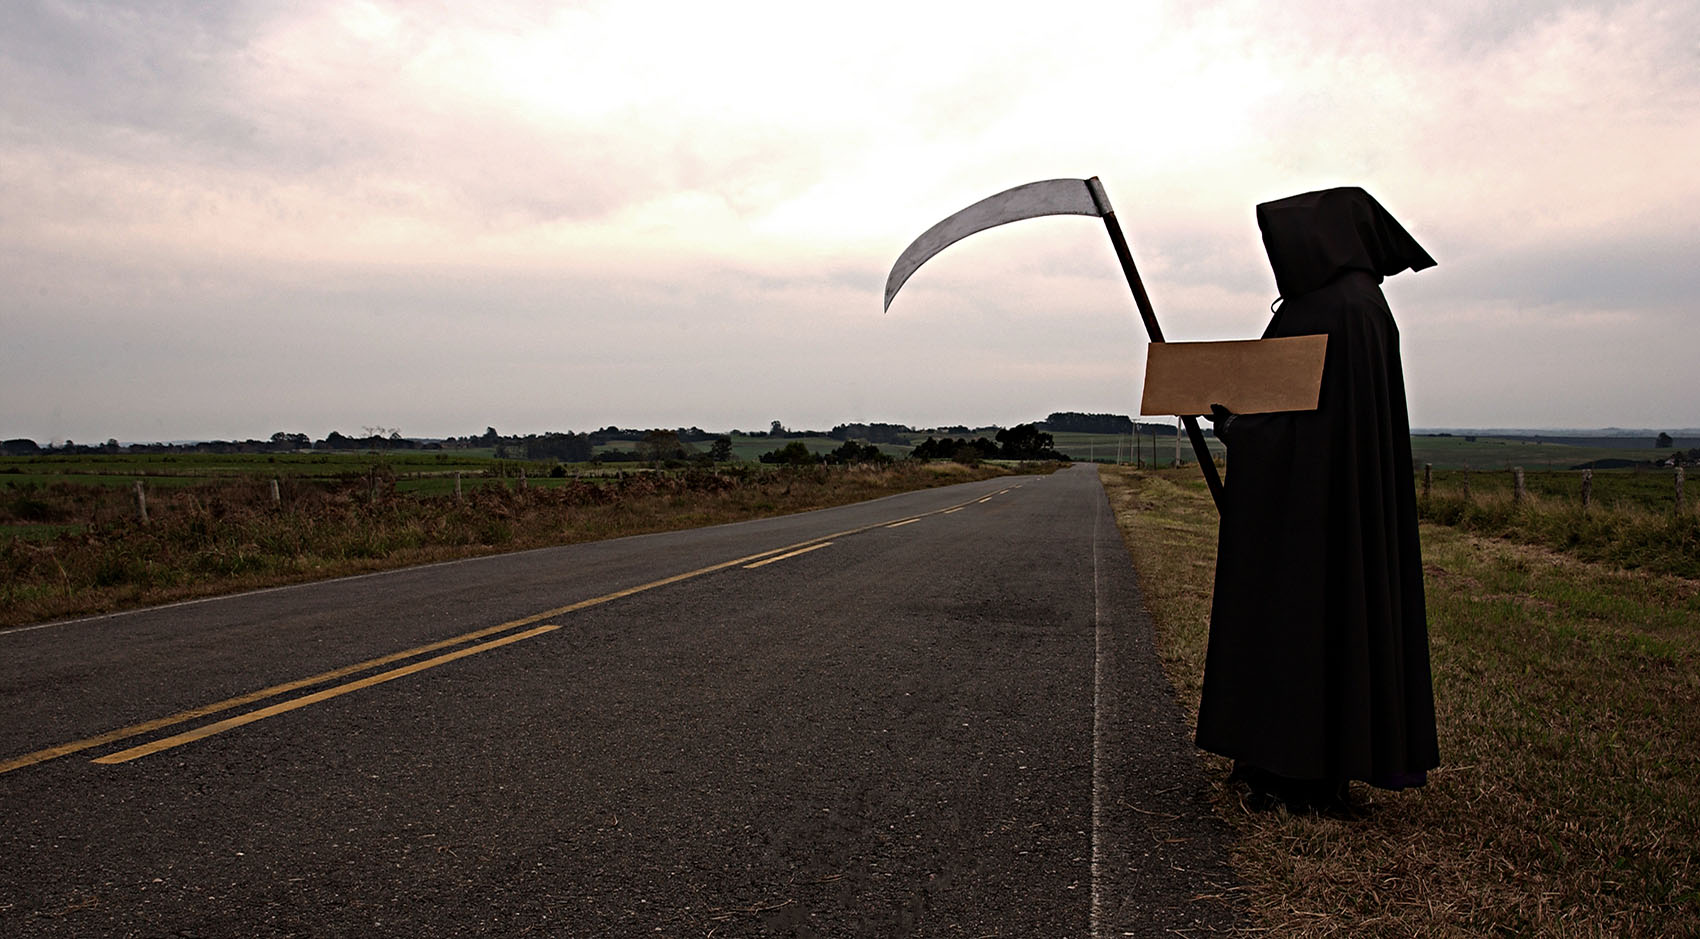 Grim reaper on the side of the road